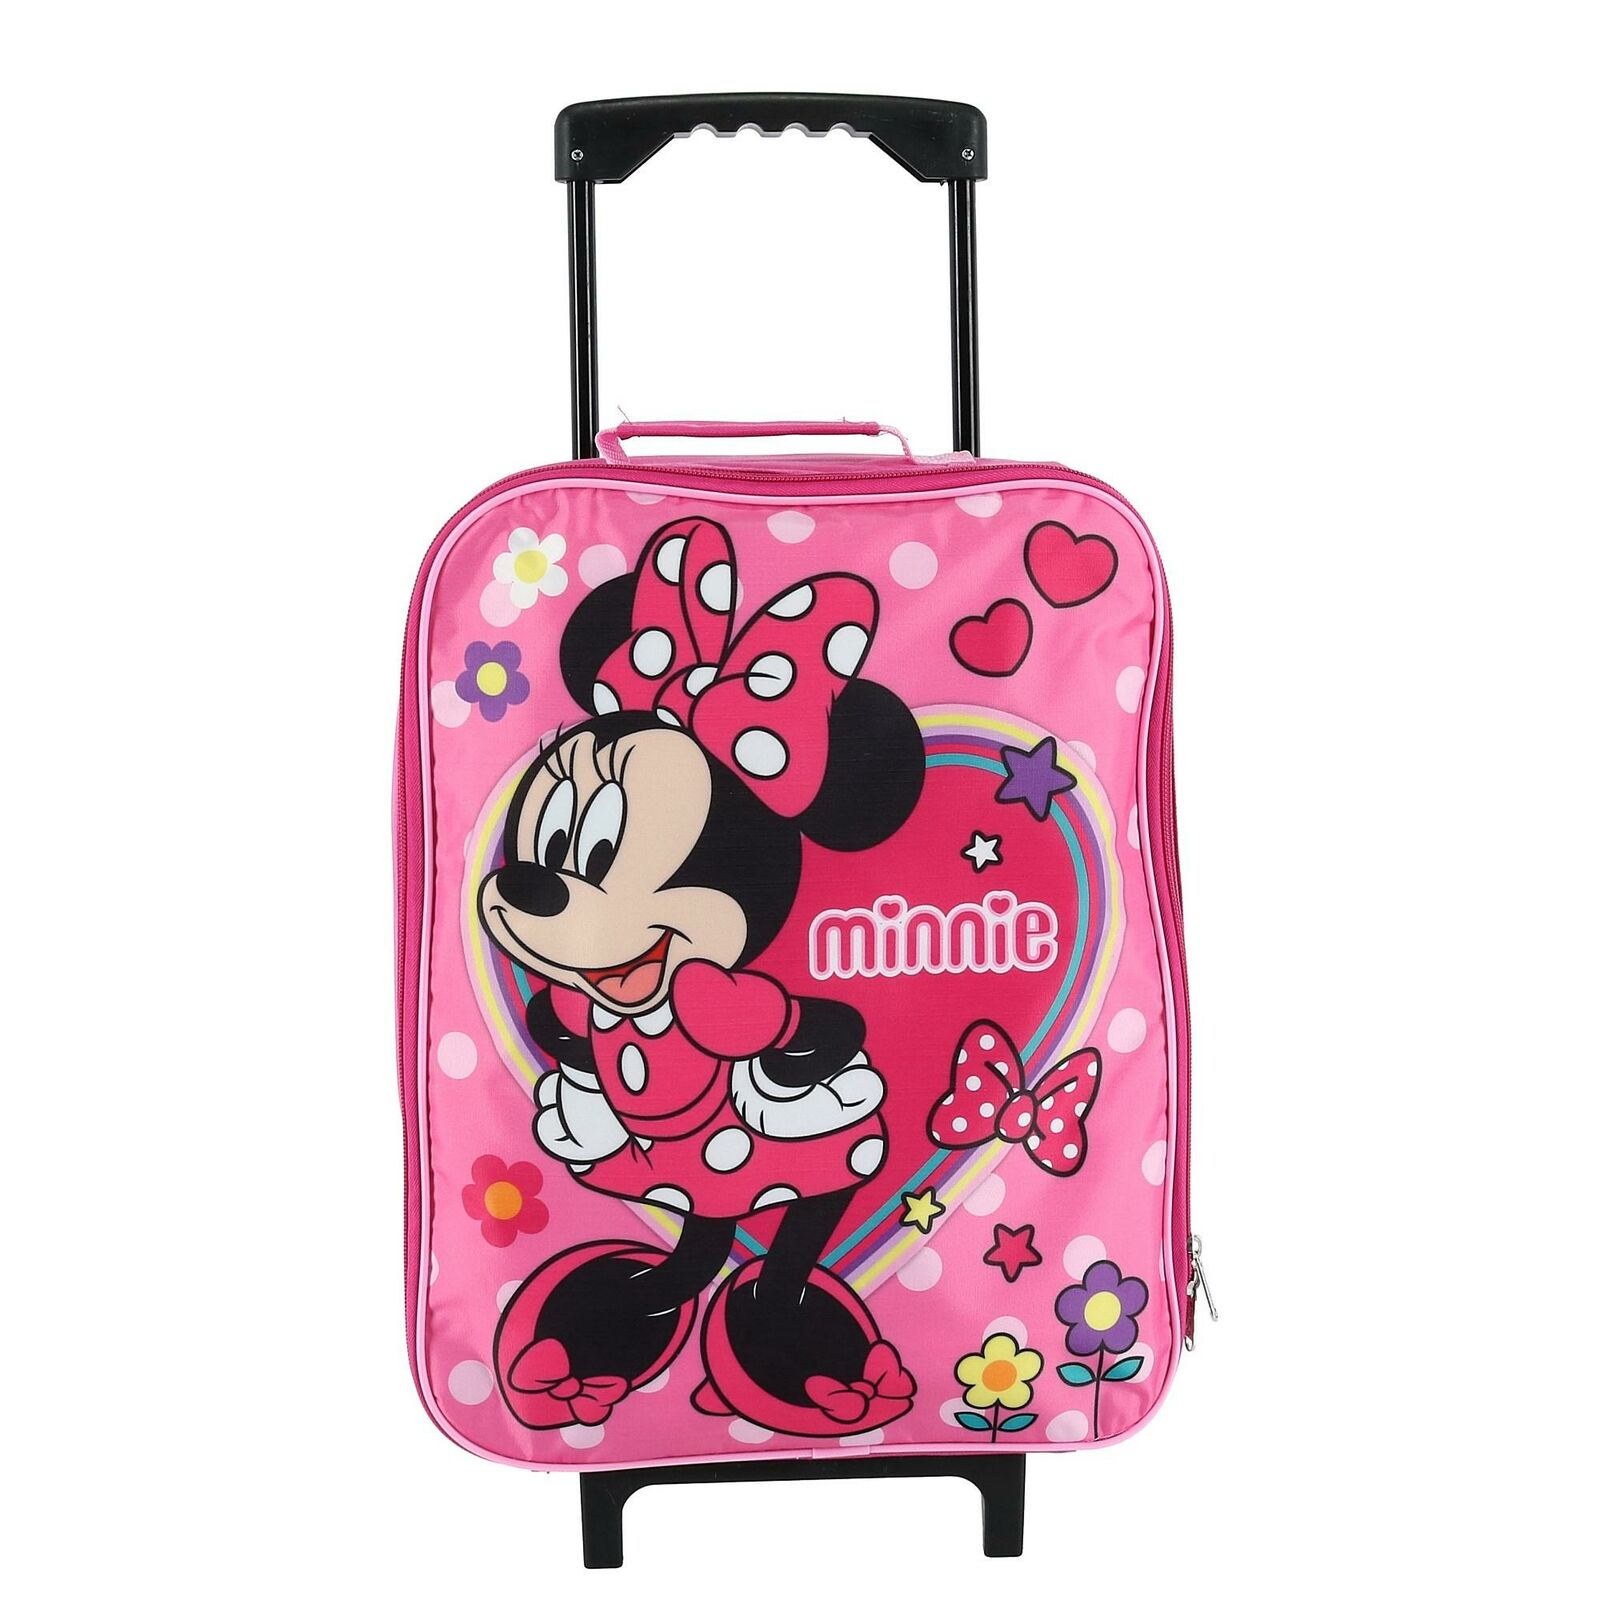 New Disney Kids' Minnie Mouse Rolling Luggage